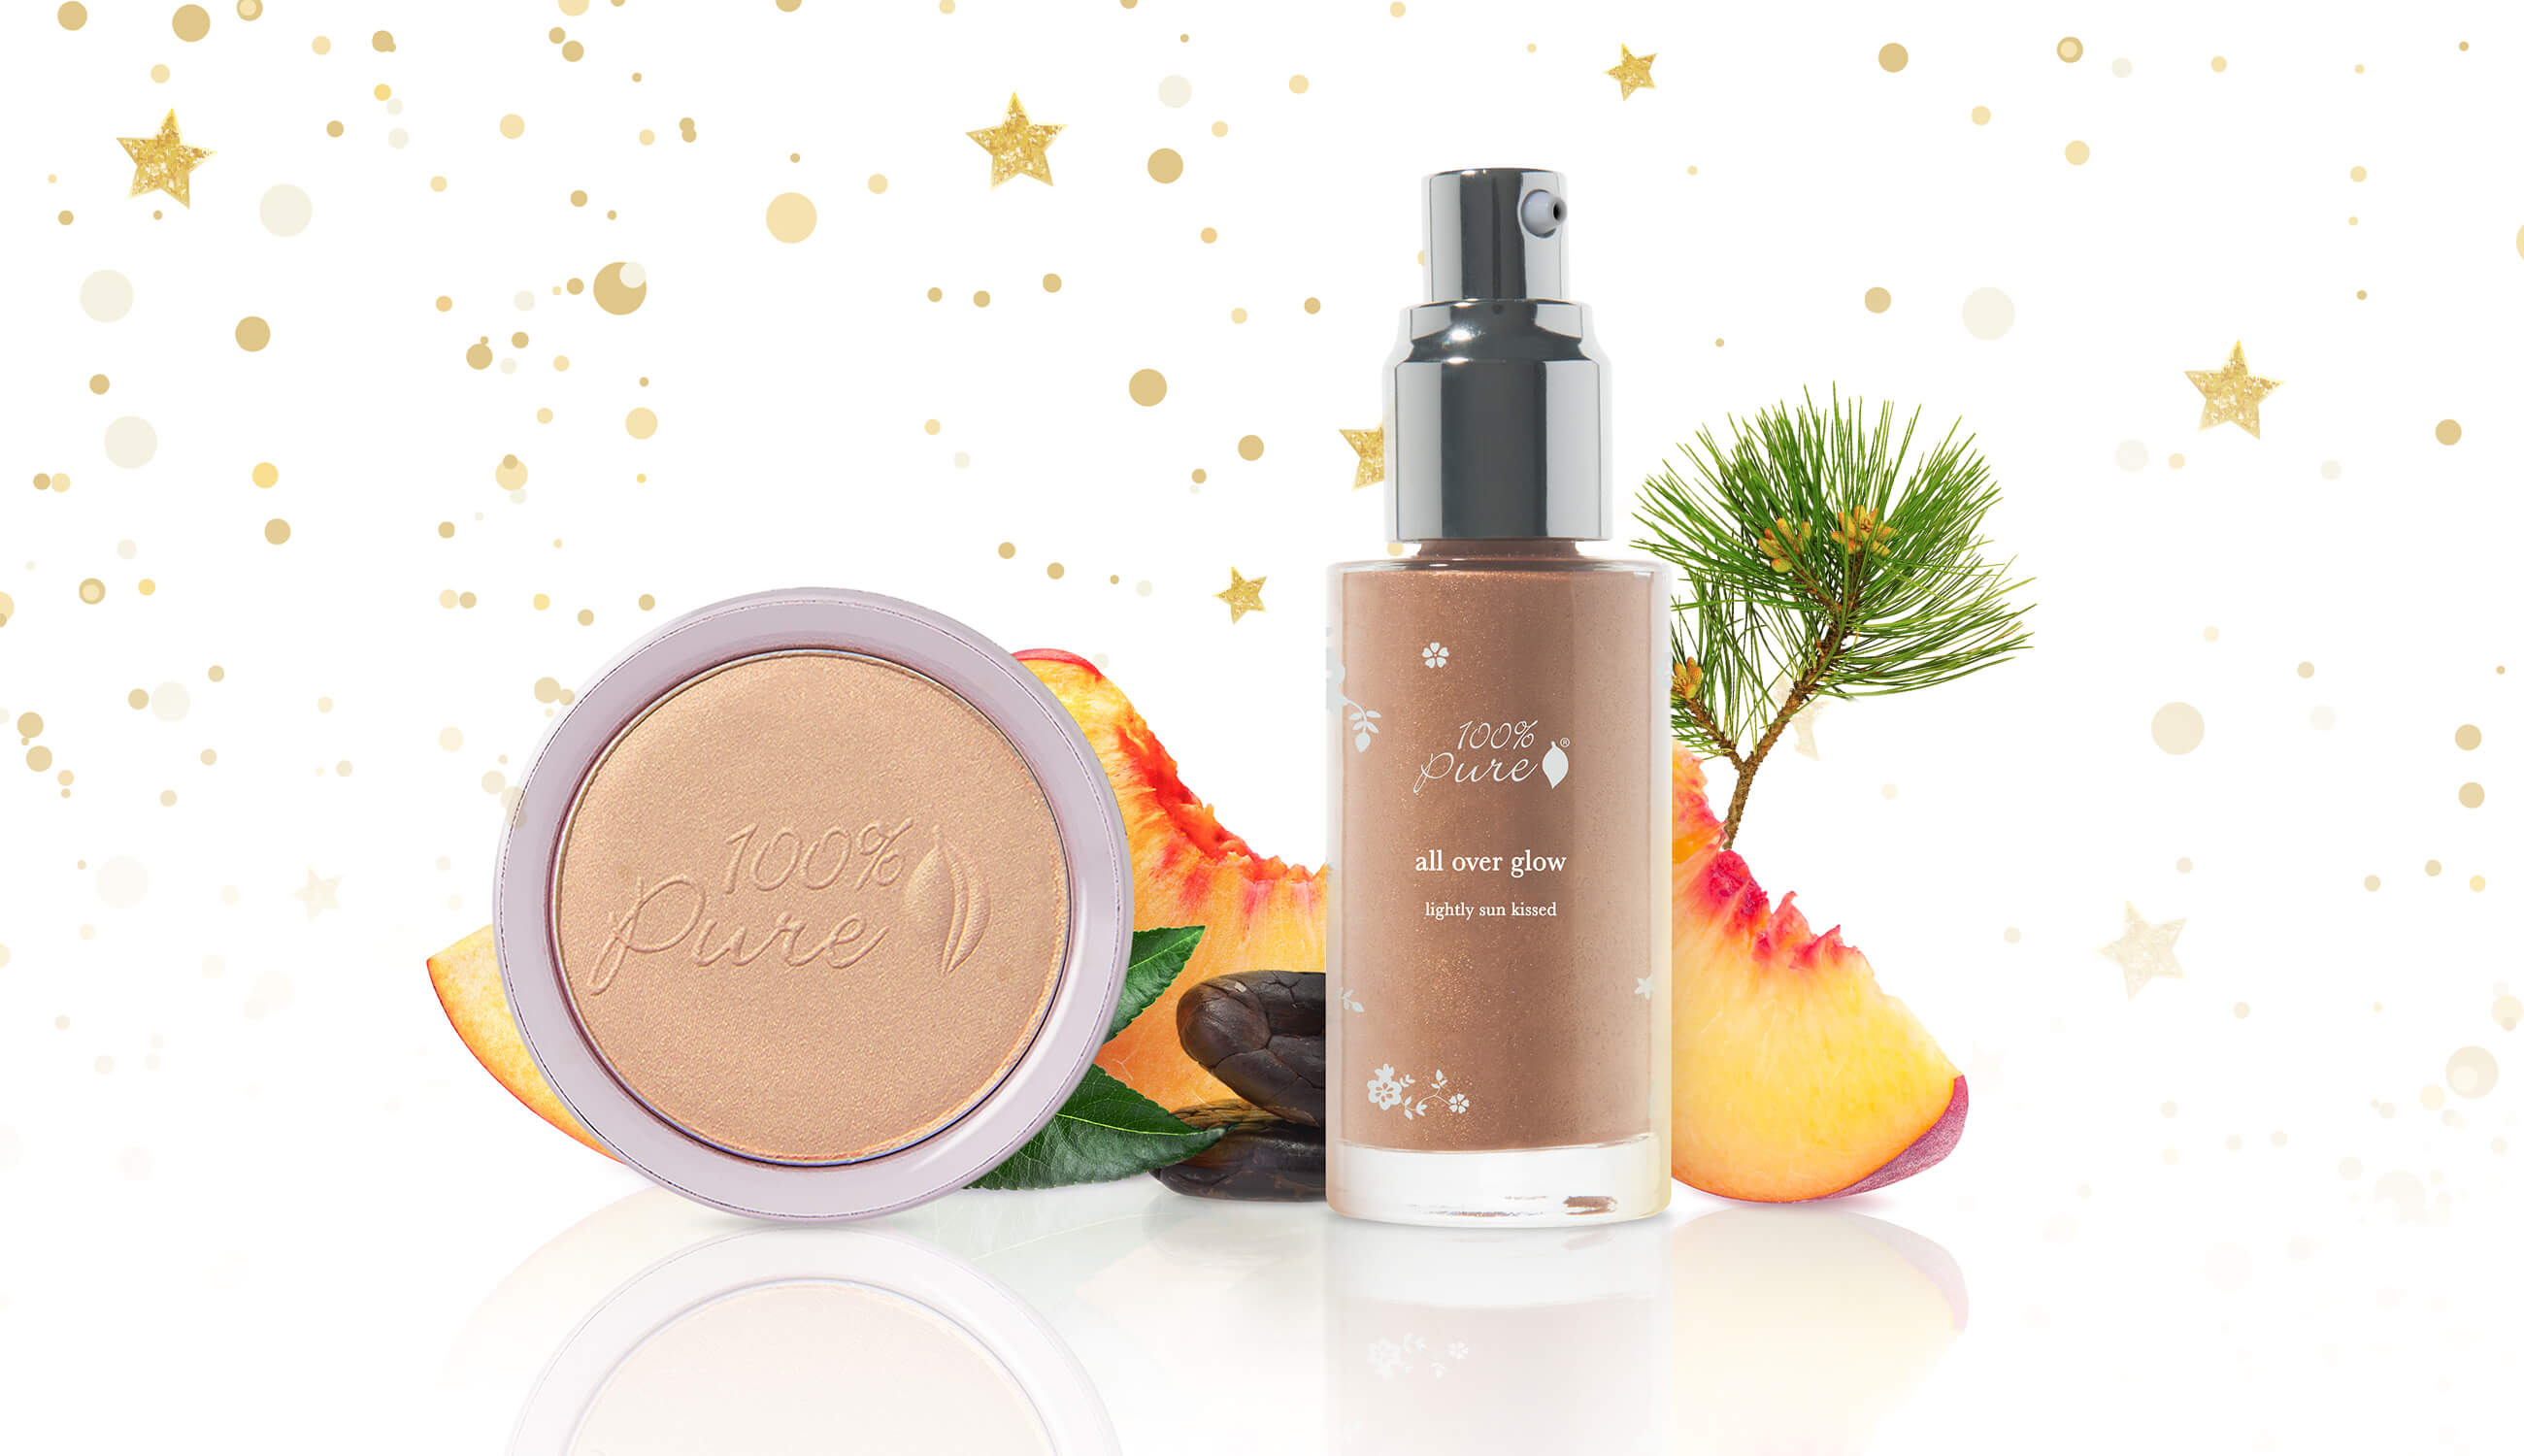 All Over Glow, Fruit Pigmented Luminizer